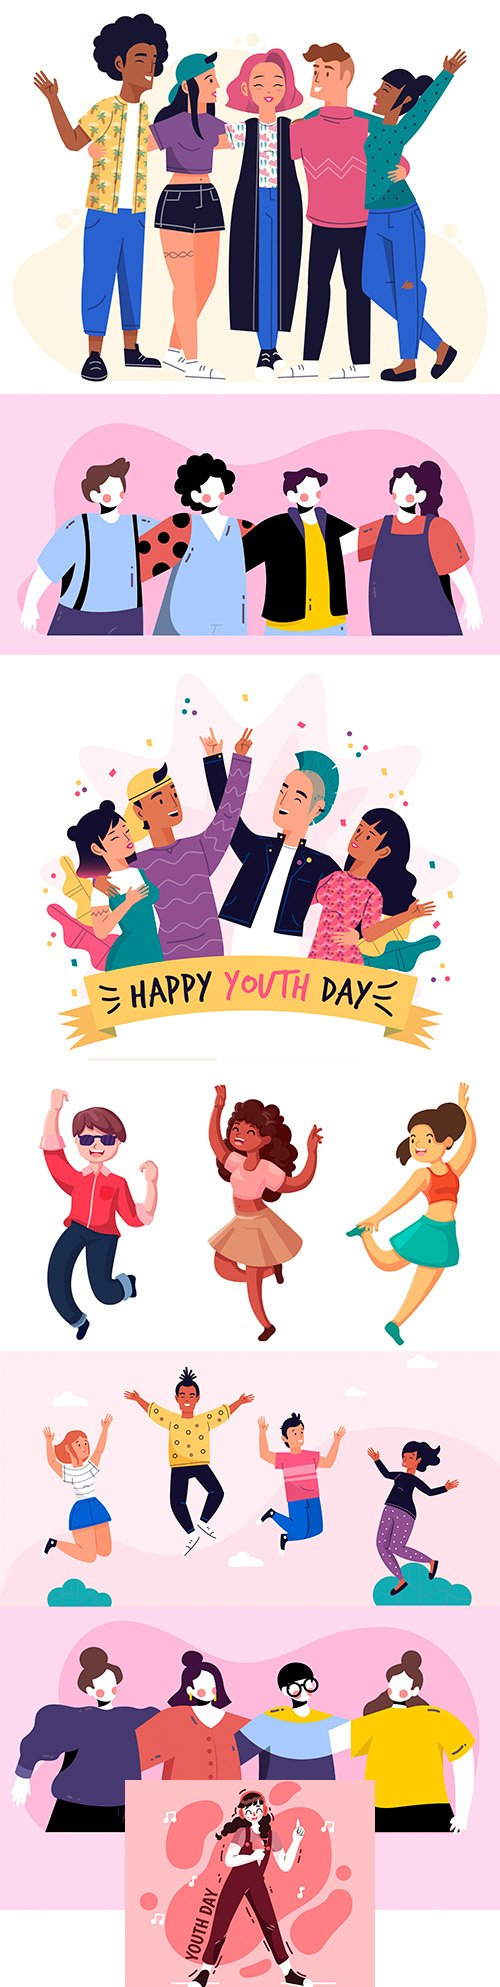 Youth Day with people hugging and jumping illustration